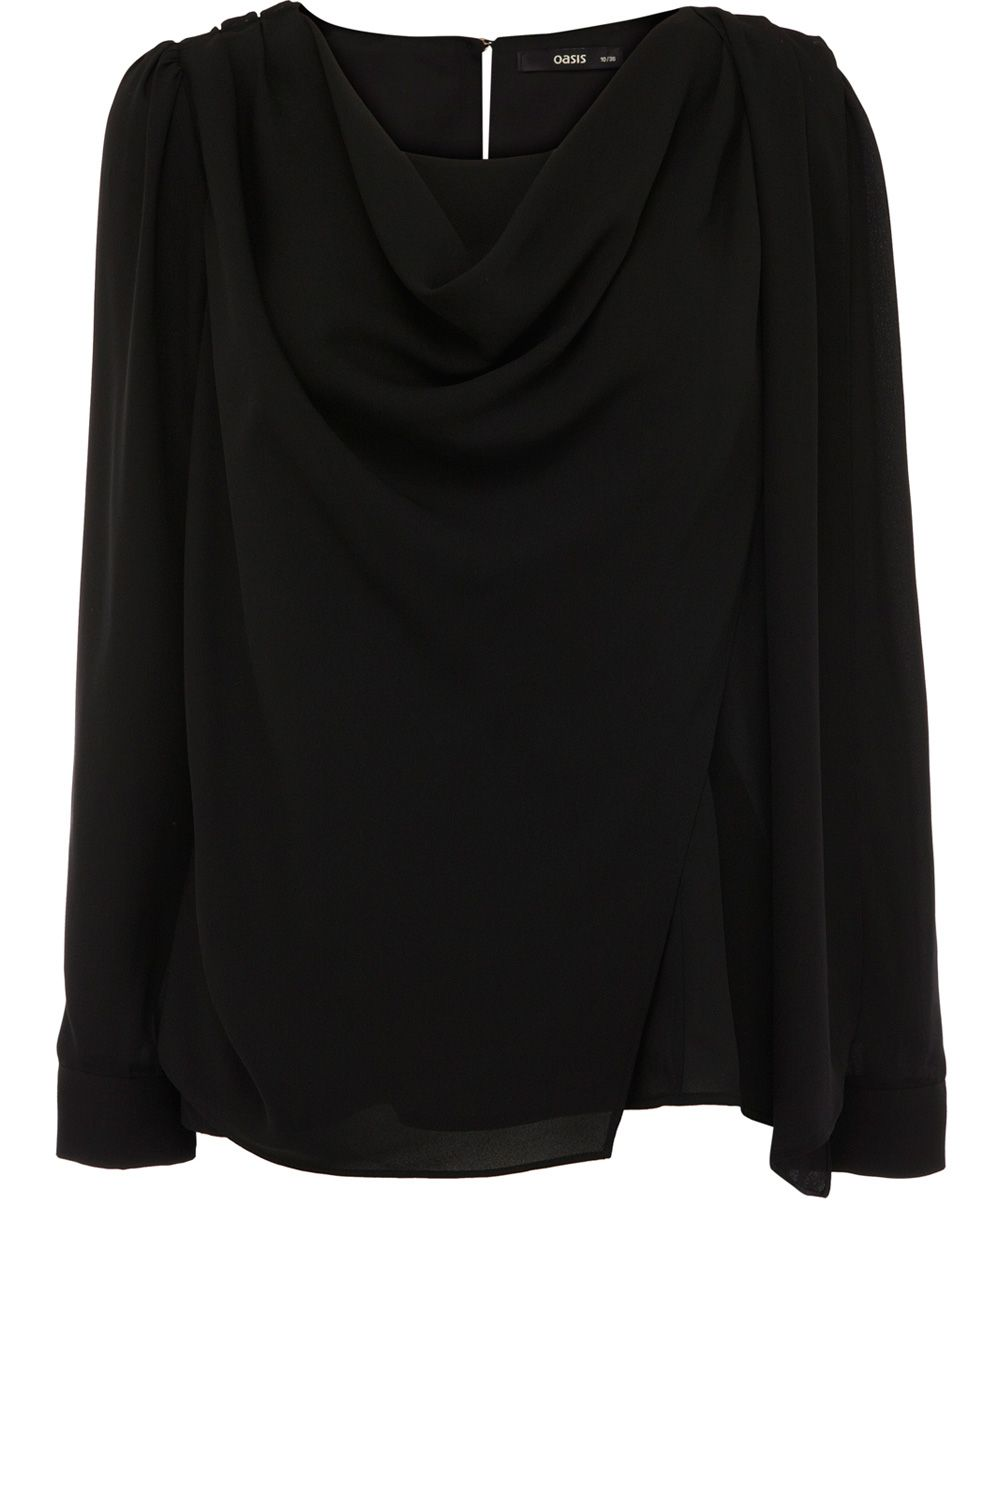 Drape cowl neck ls top